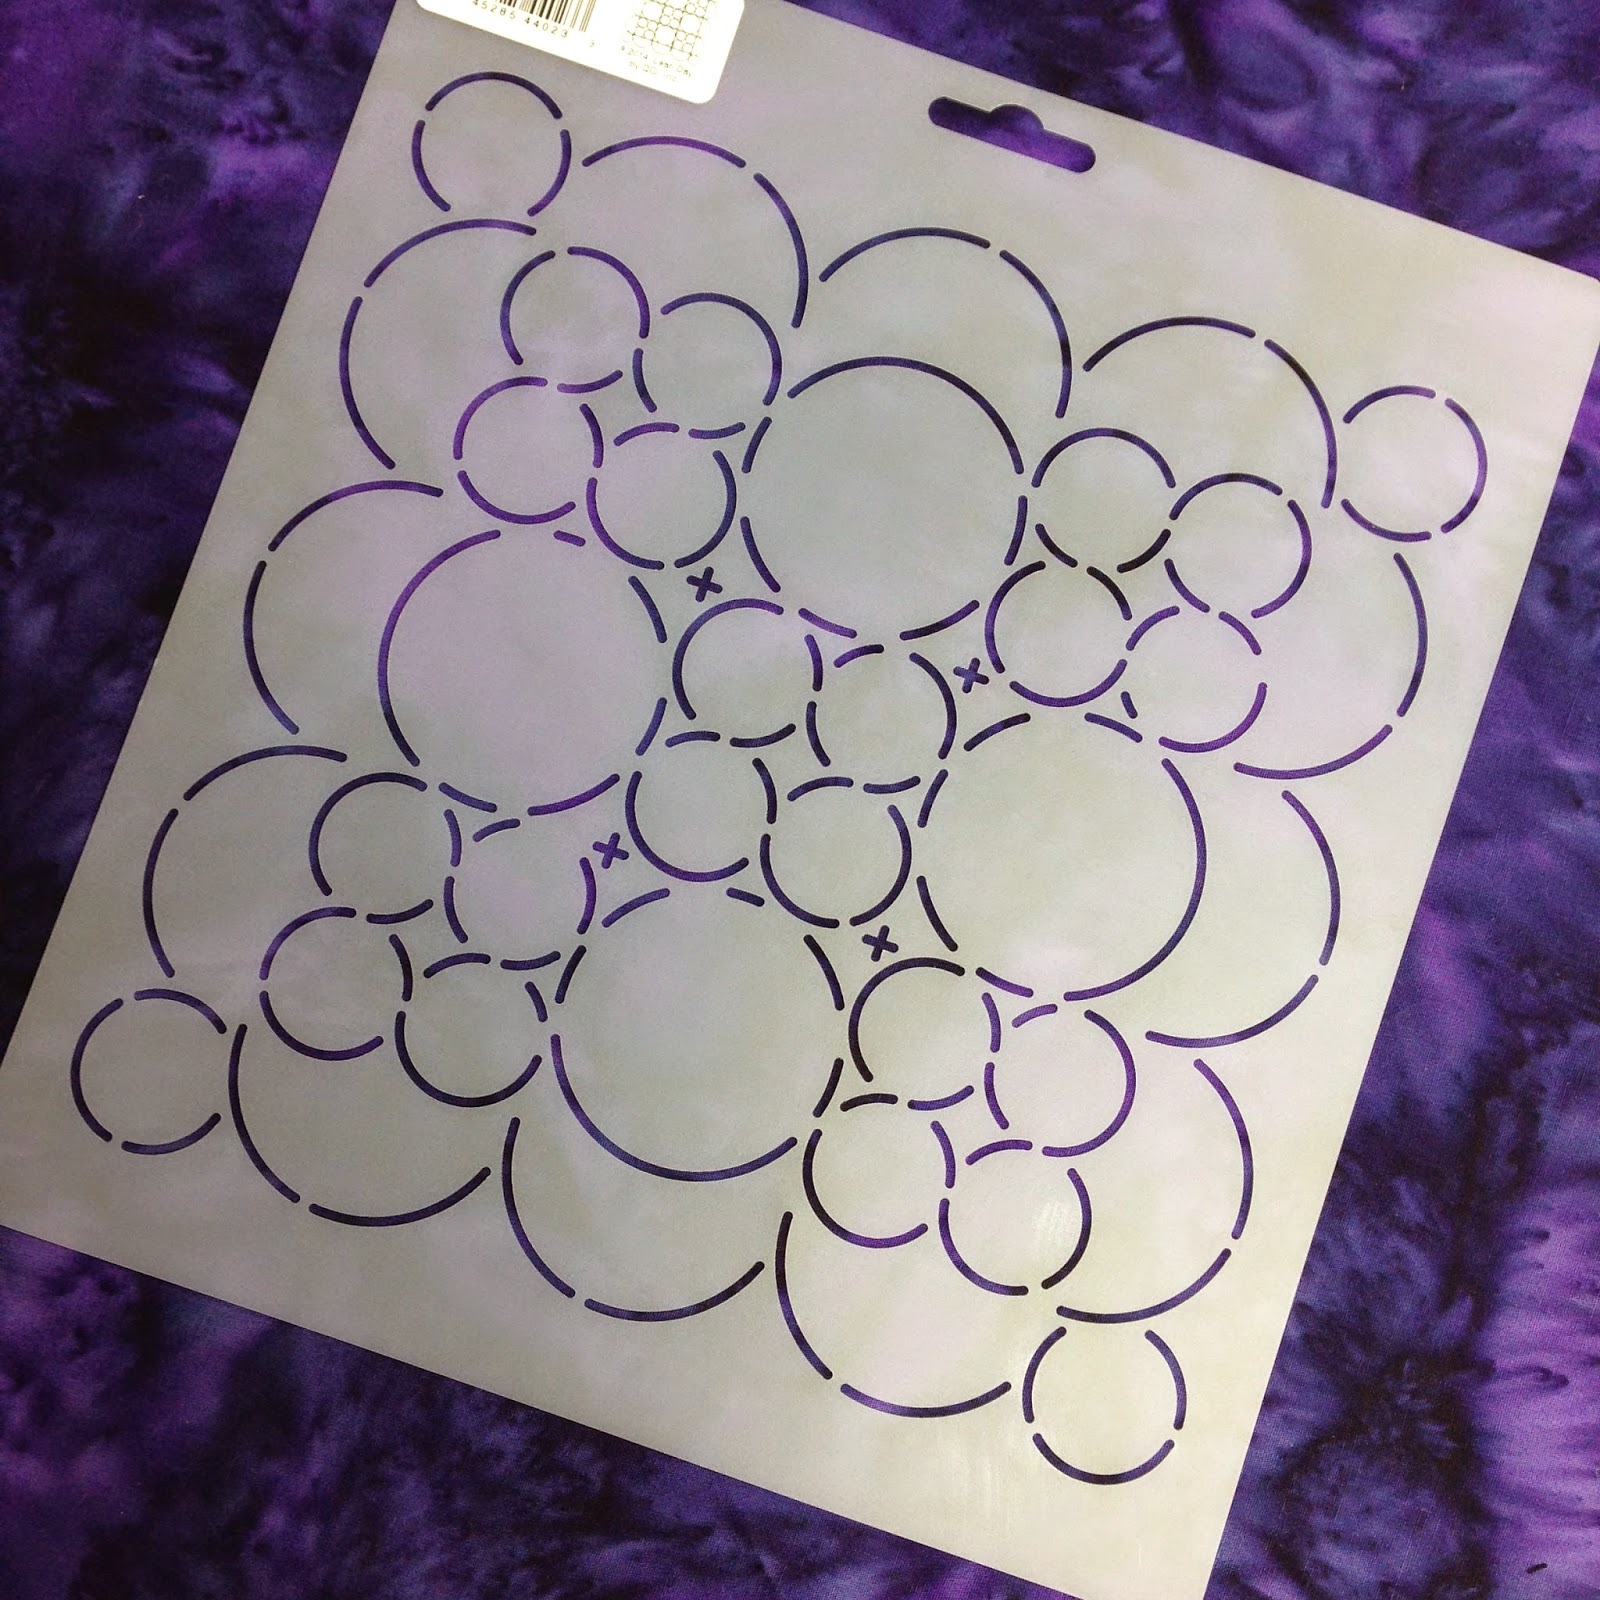 The Free Motion Quilting Project: 7. Quilt Circles in a 9 Patch Block